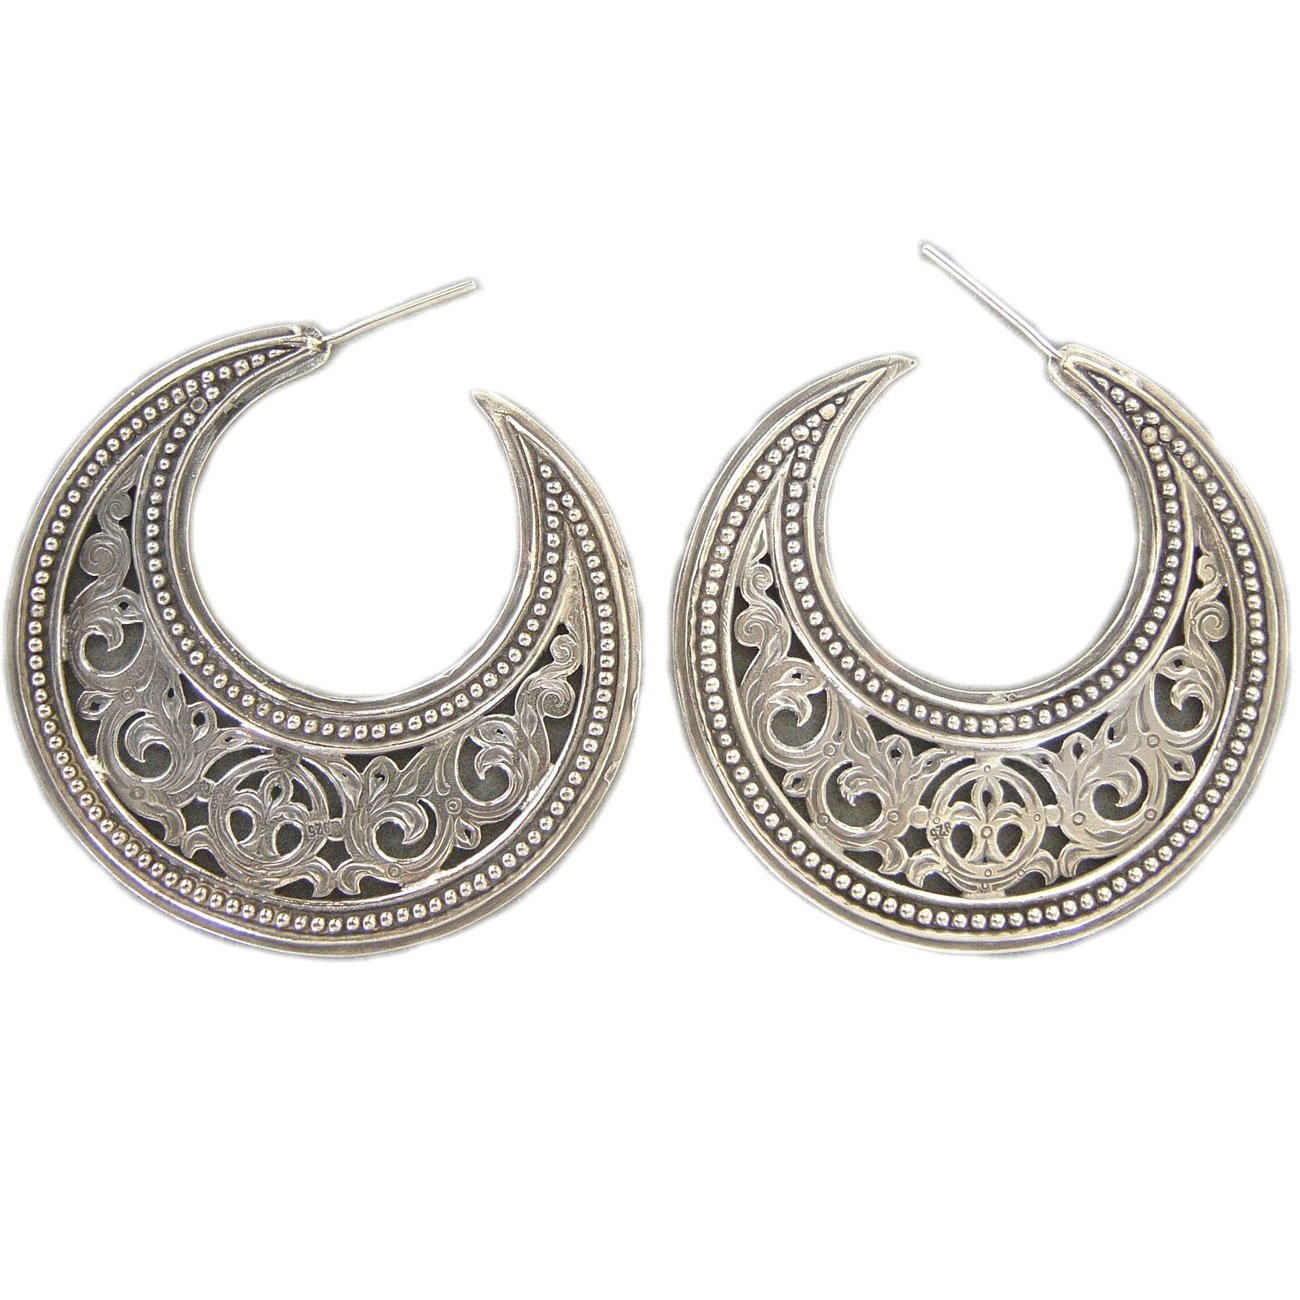 Gerochristo 1164 - Sterling Silver Medieval Byzantine Crescent Earrings - L